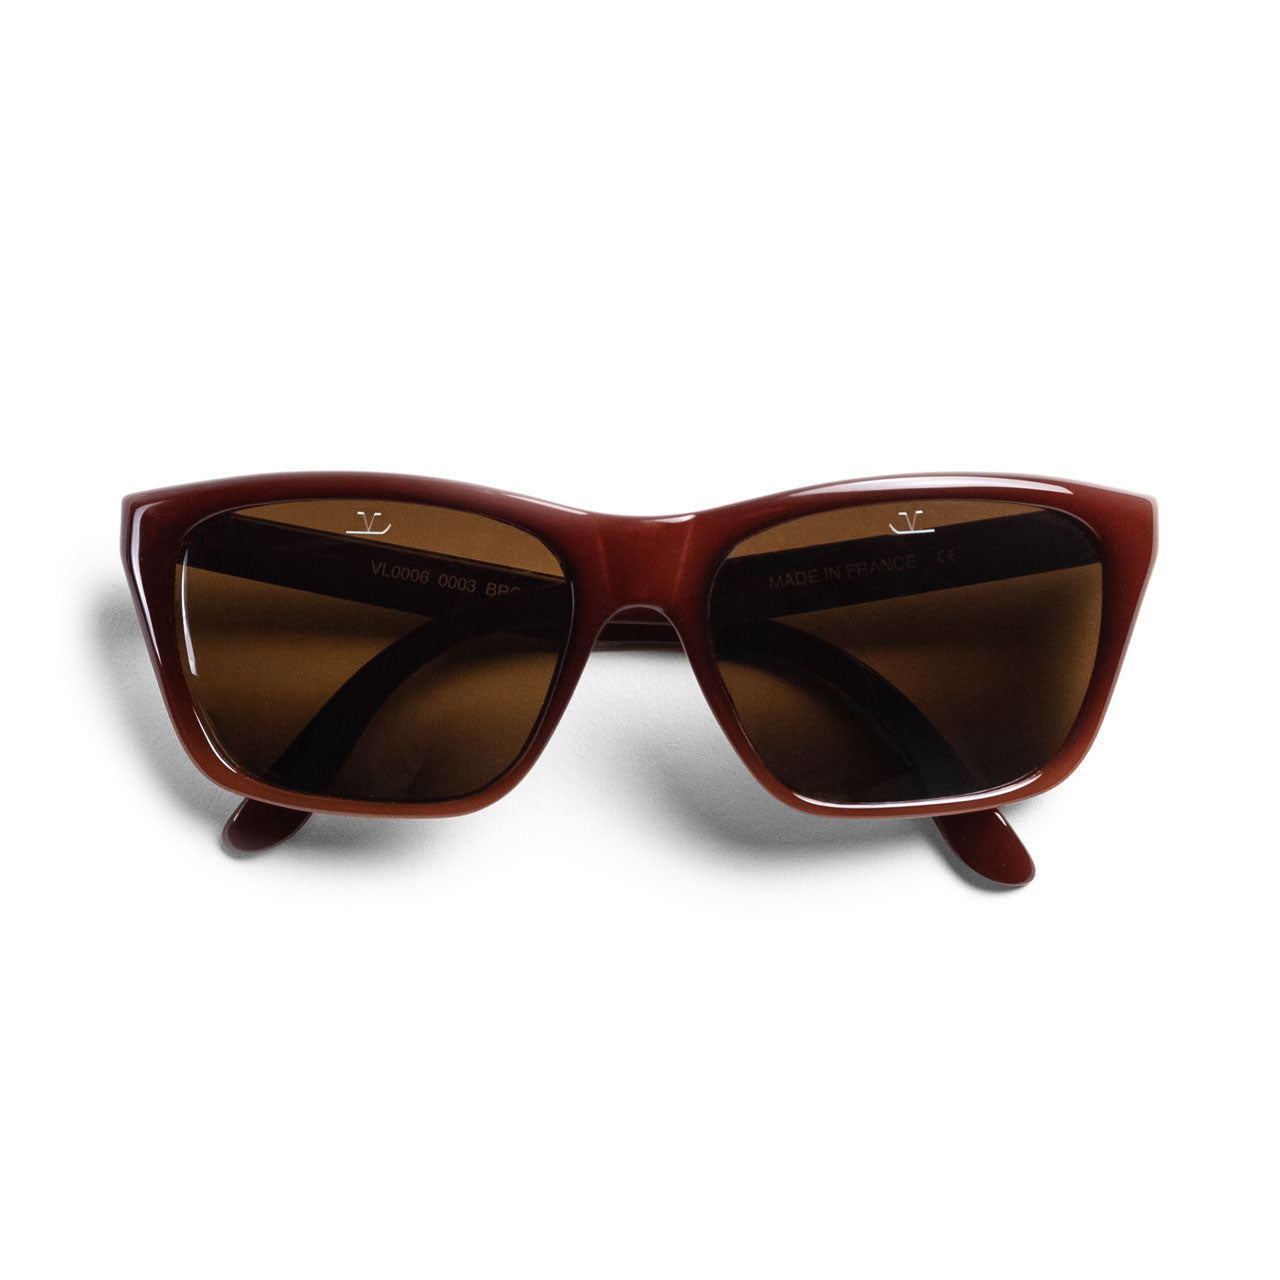 Vuarnet Legend Sunglasses